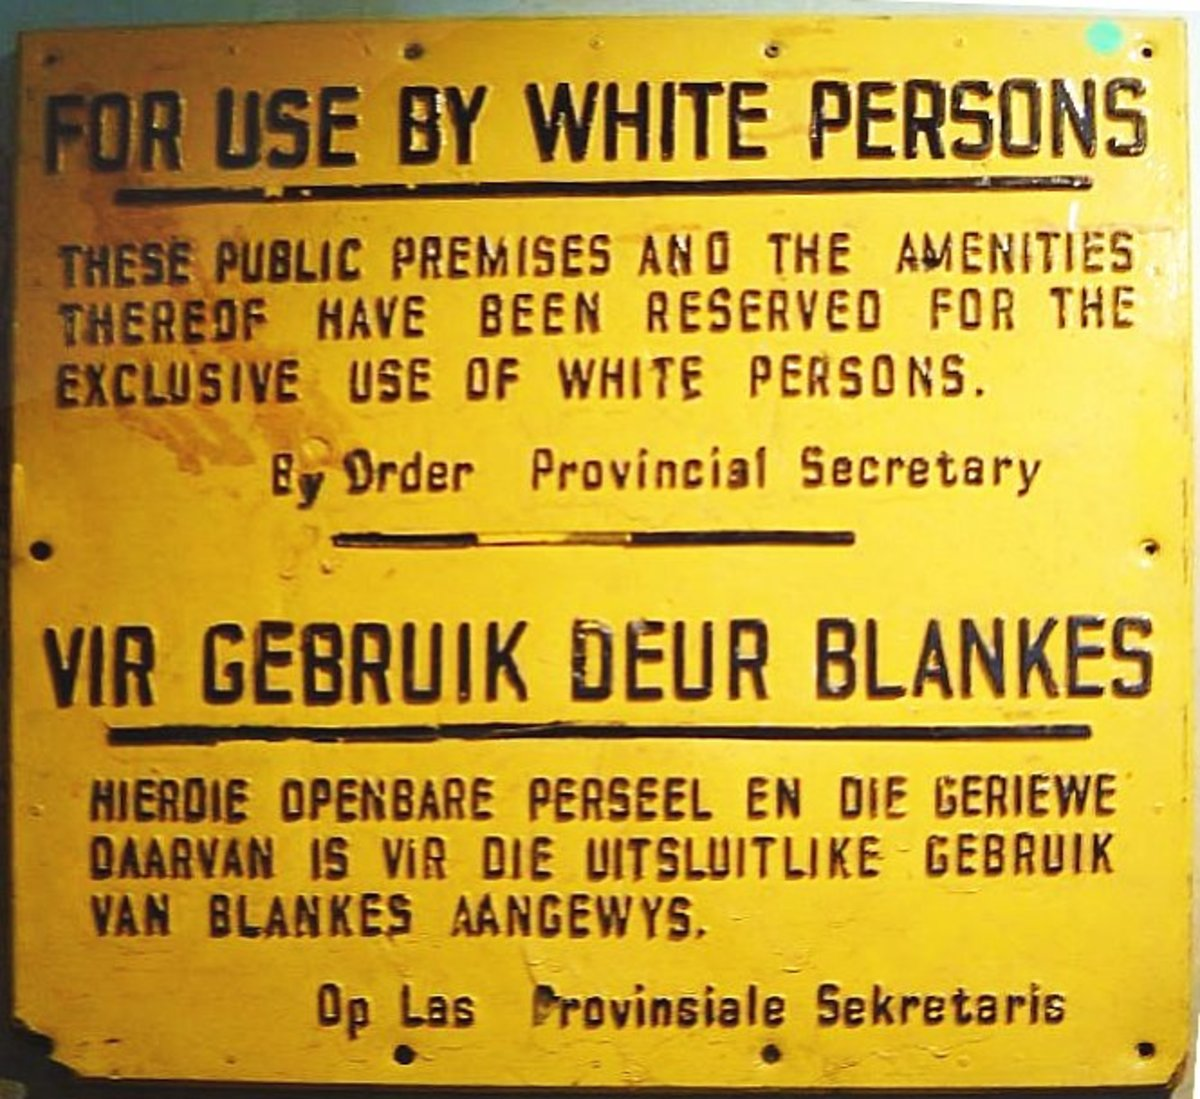 A notice indicating that a certain public premises solely for the use set by whites in South Africa